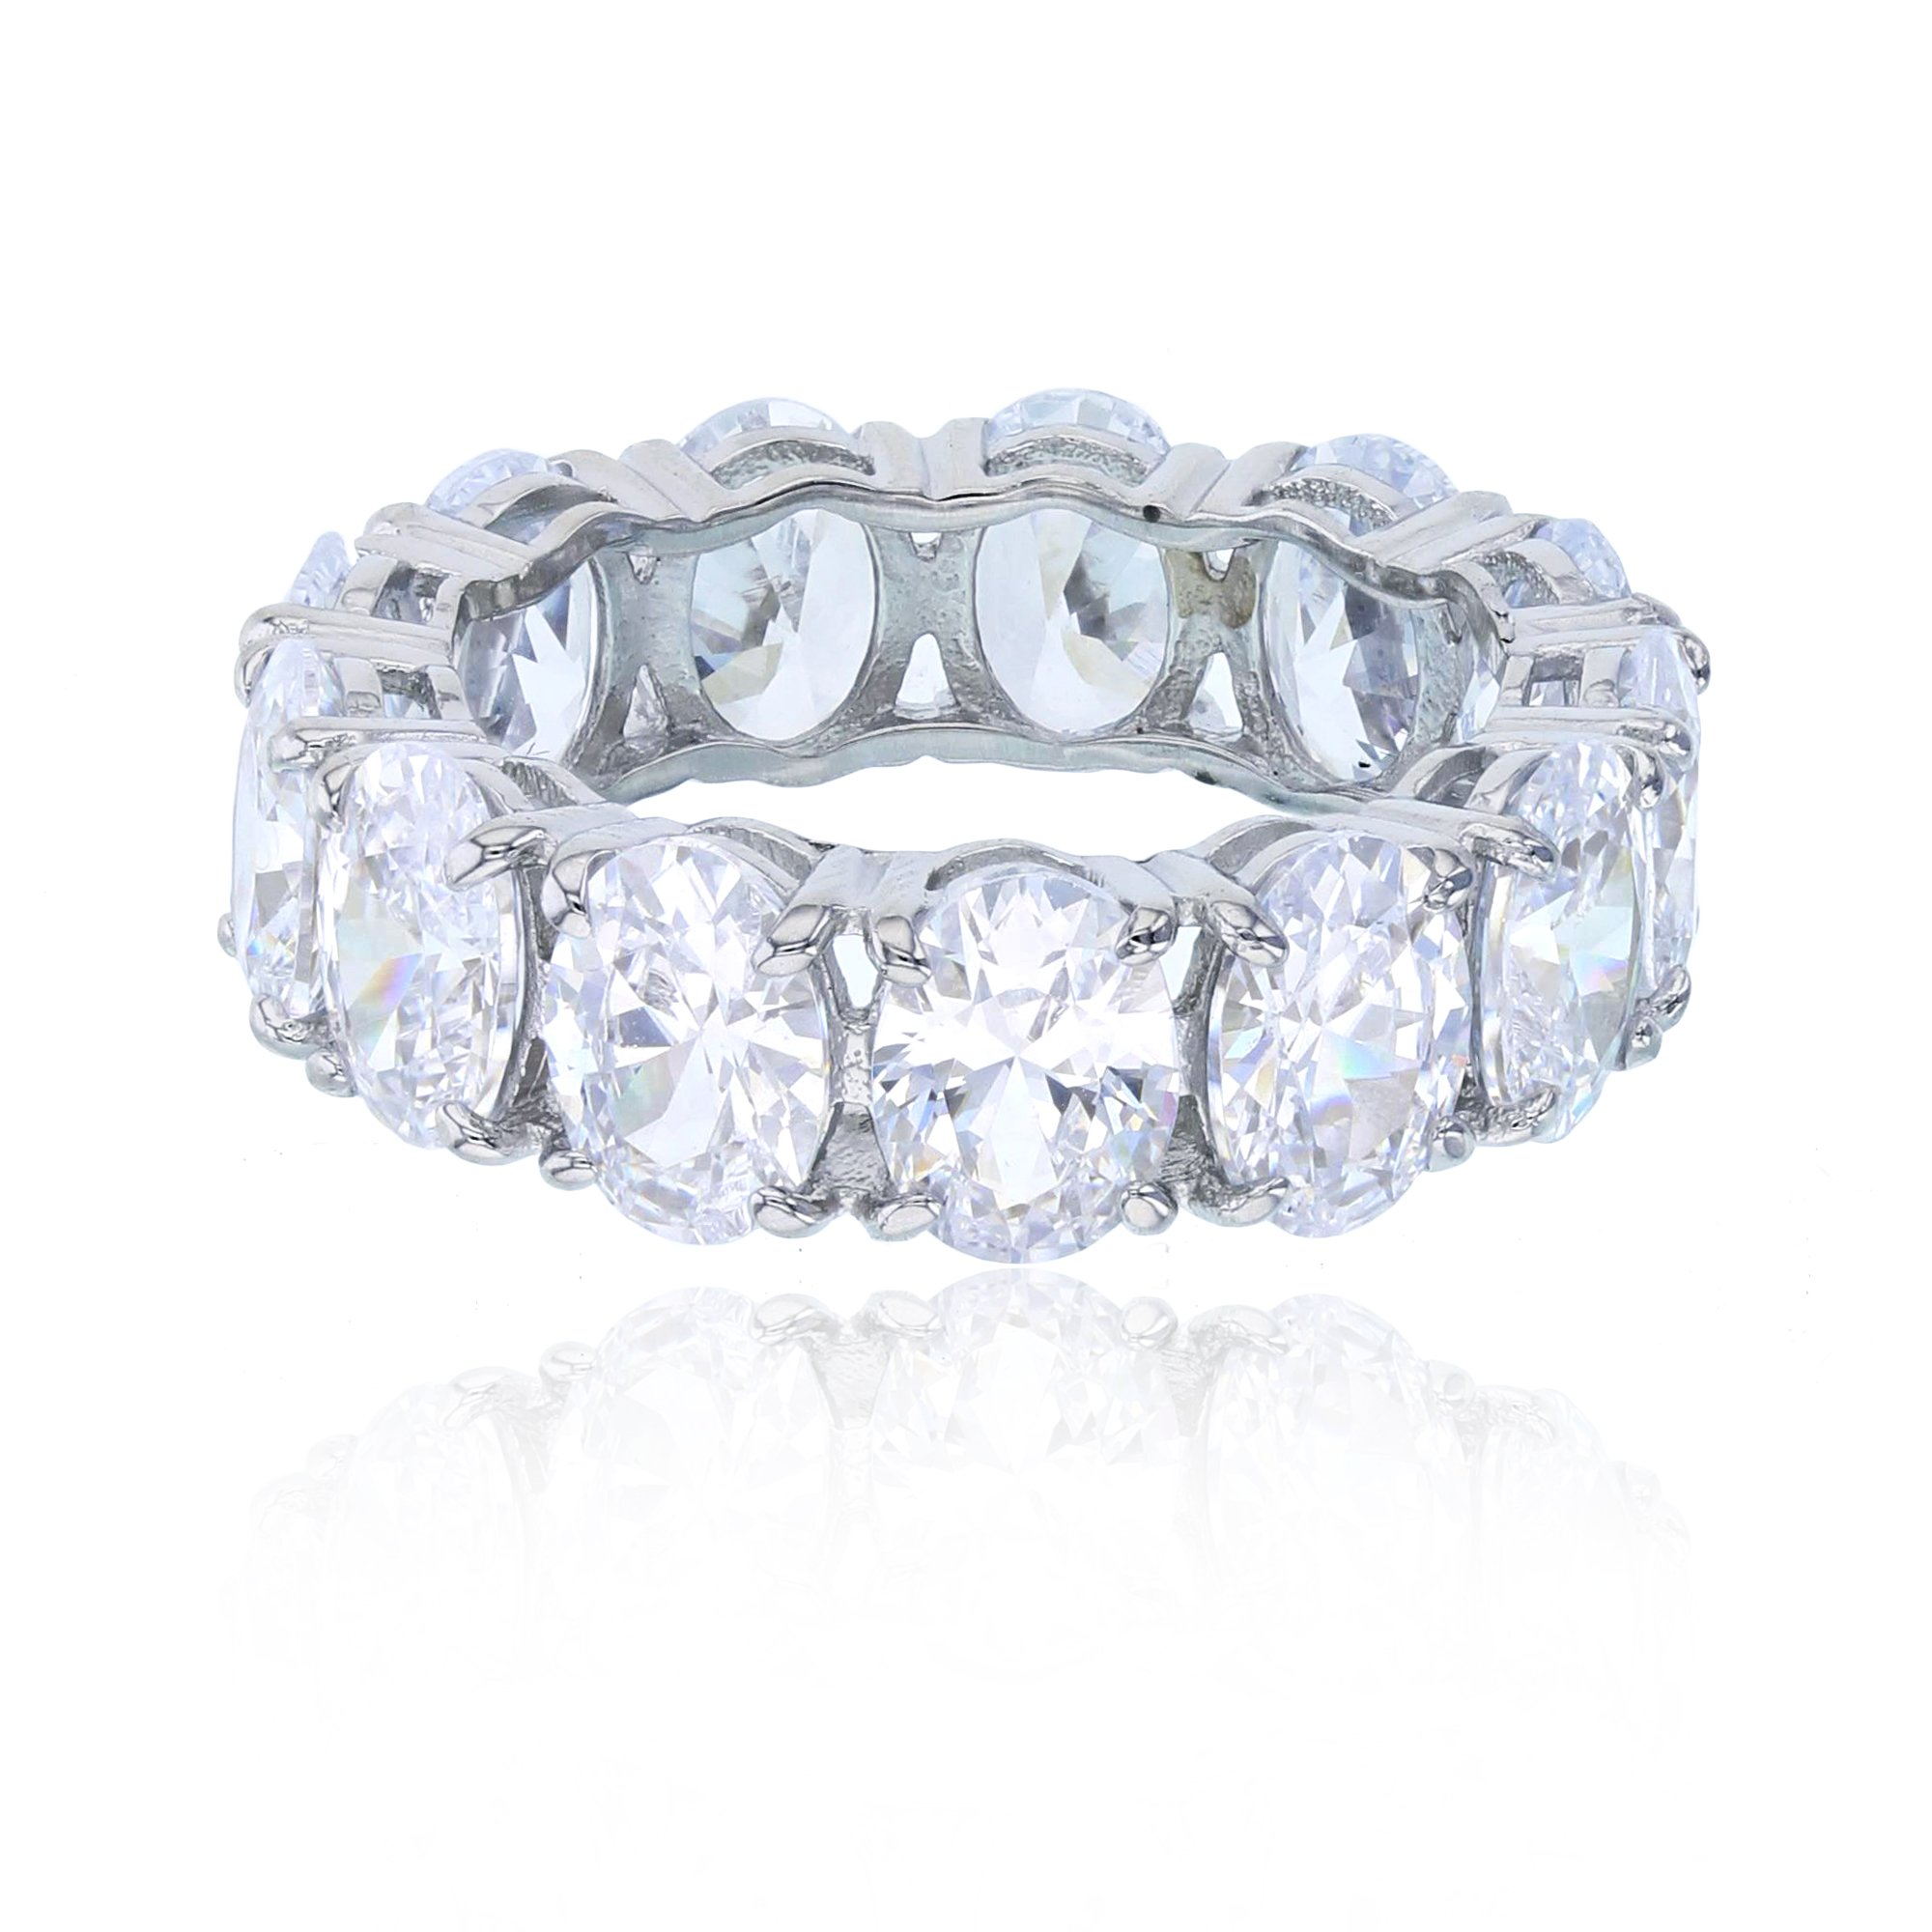 Decadence Women's Sterling Silver 6x8mm Oval Eternity Band, 5